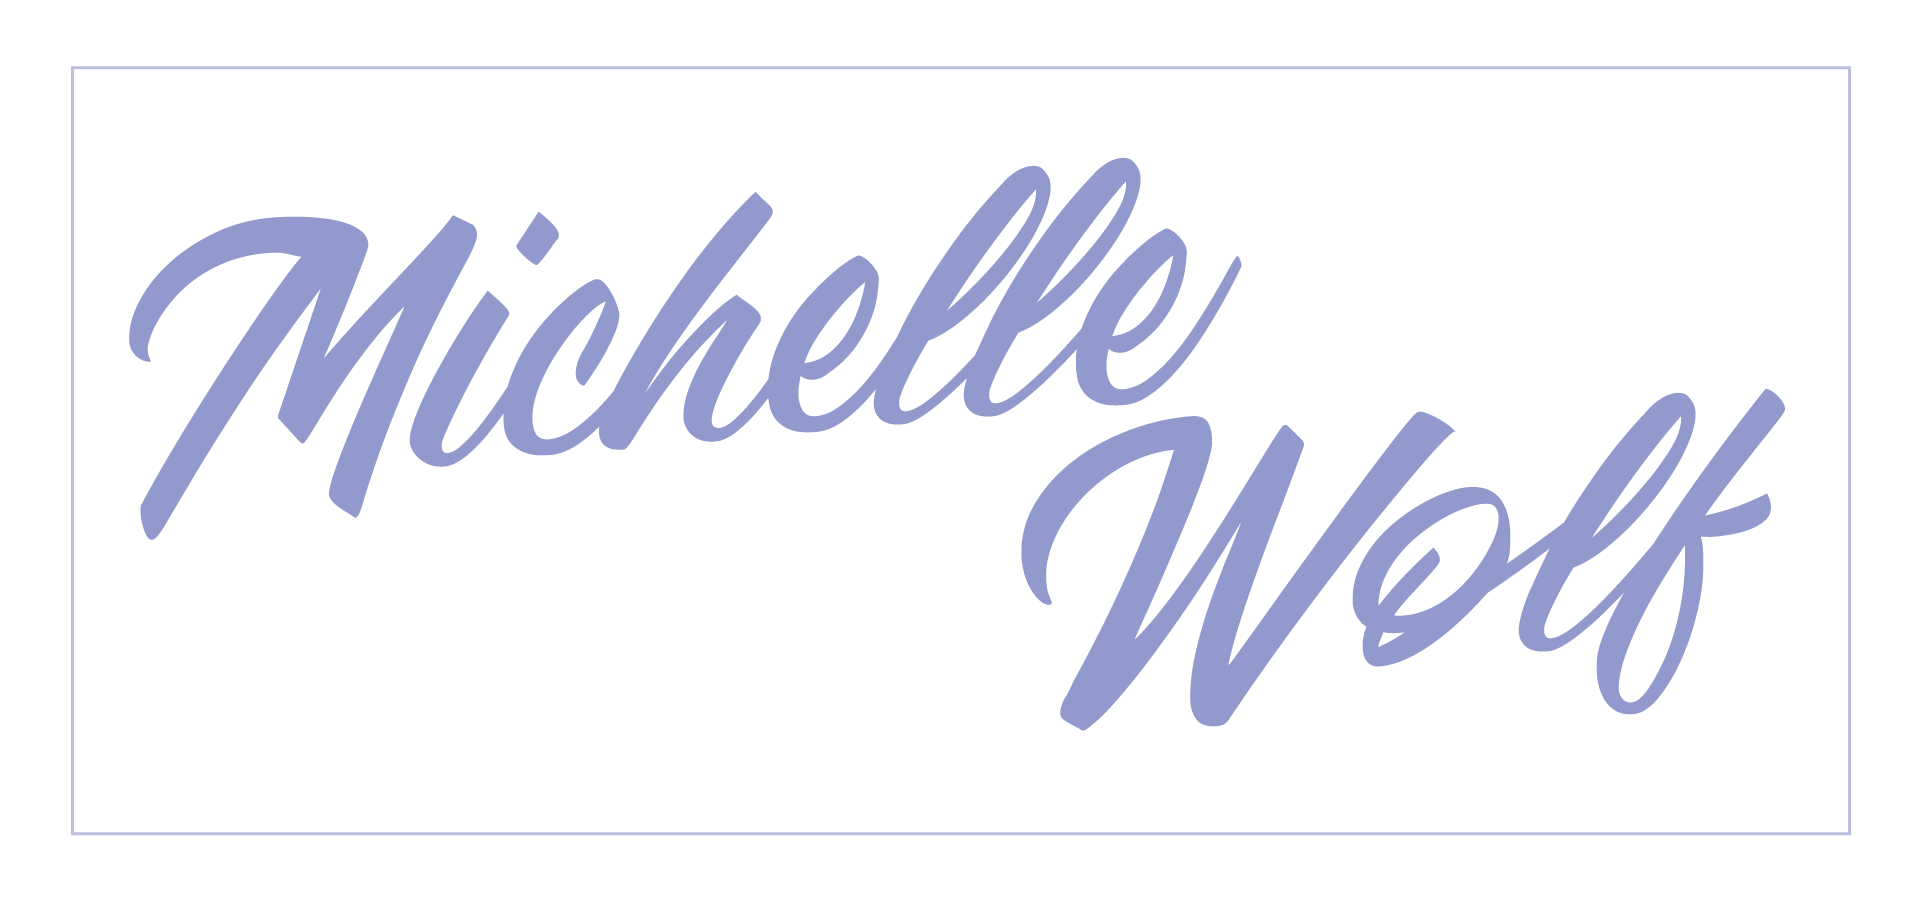 Michelle_header.png